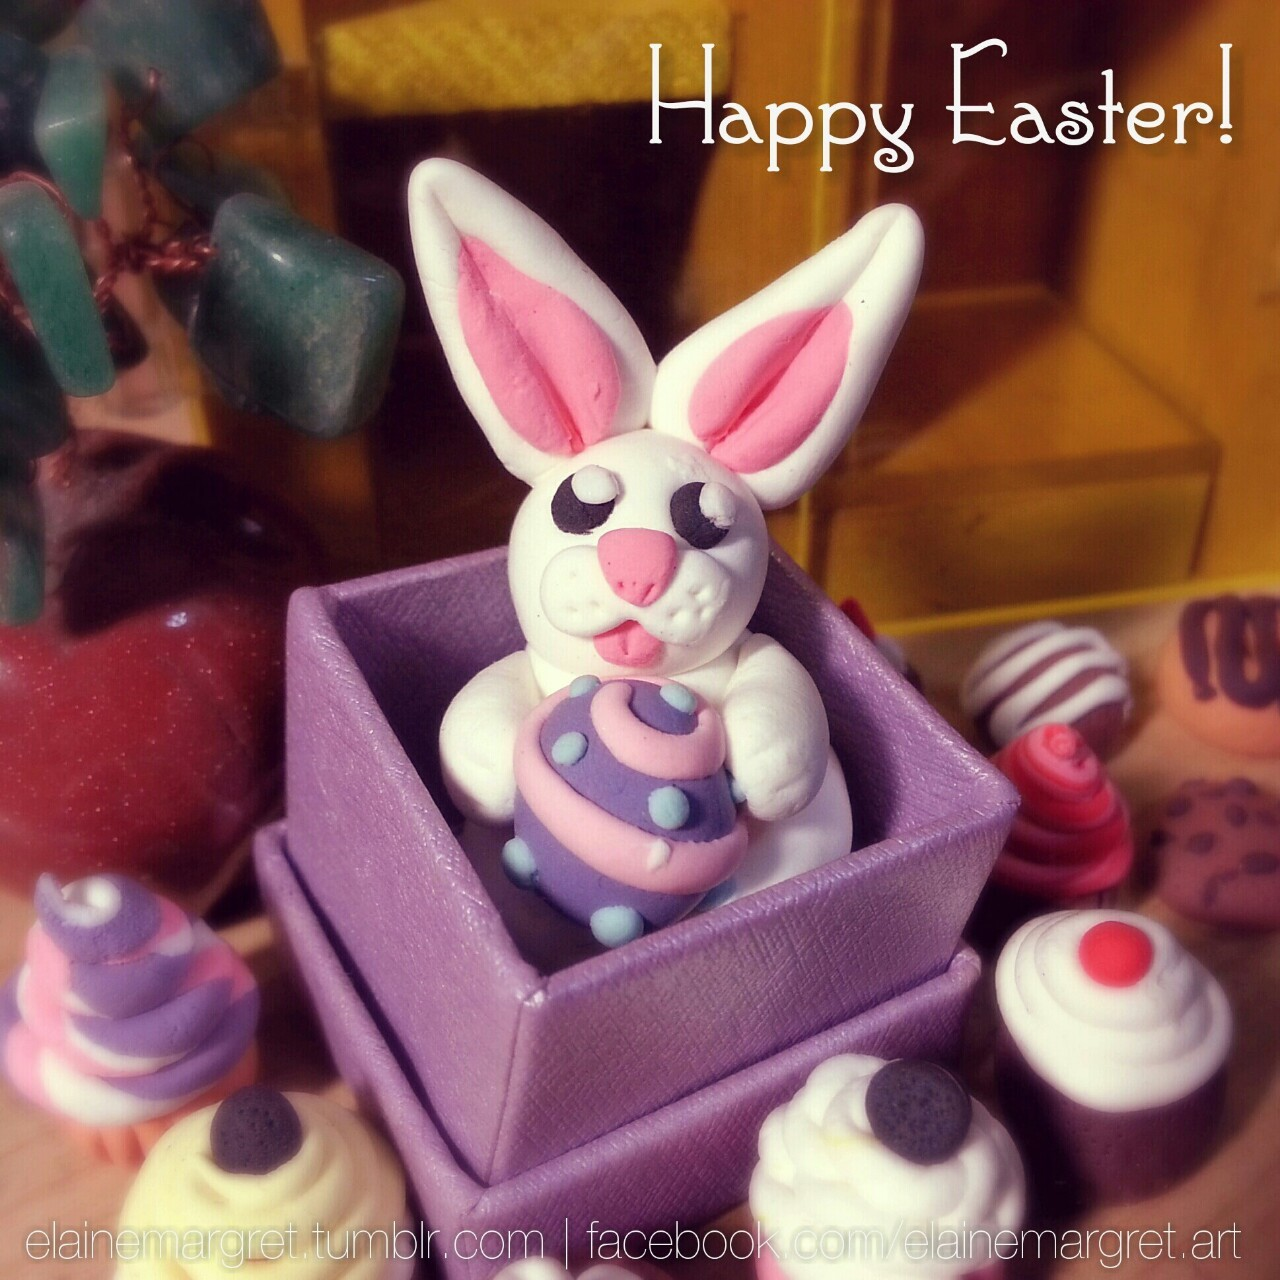 Too late? Never mind! My little clay bunny still wishes everyone a very HAPPY EASTER! ;D